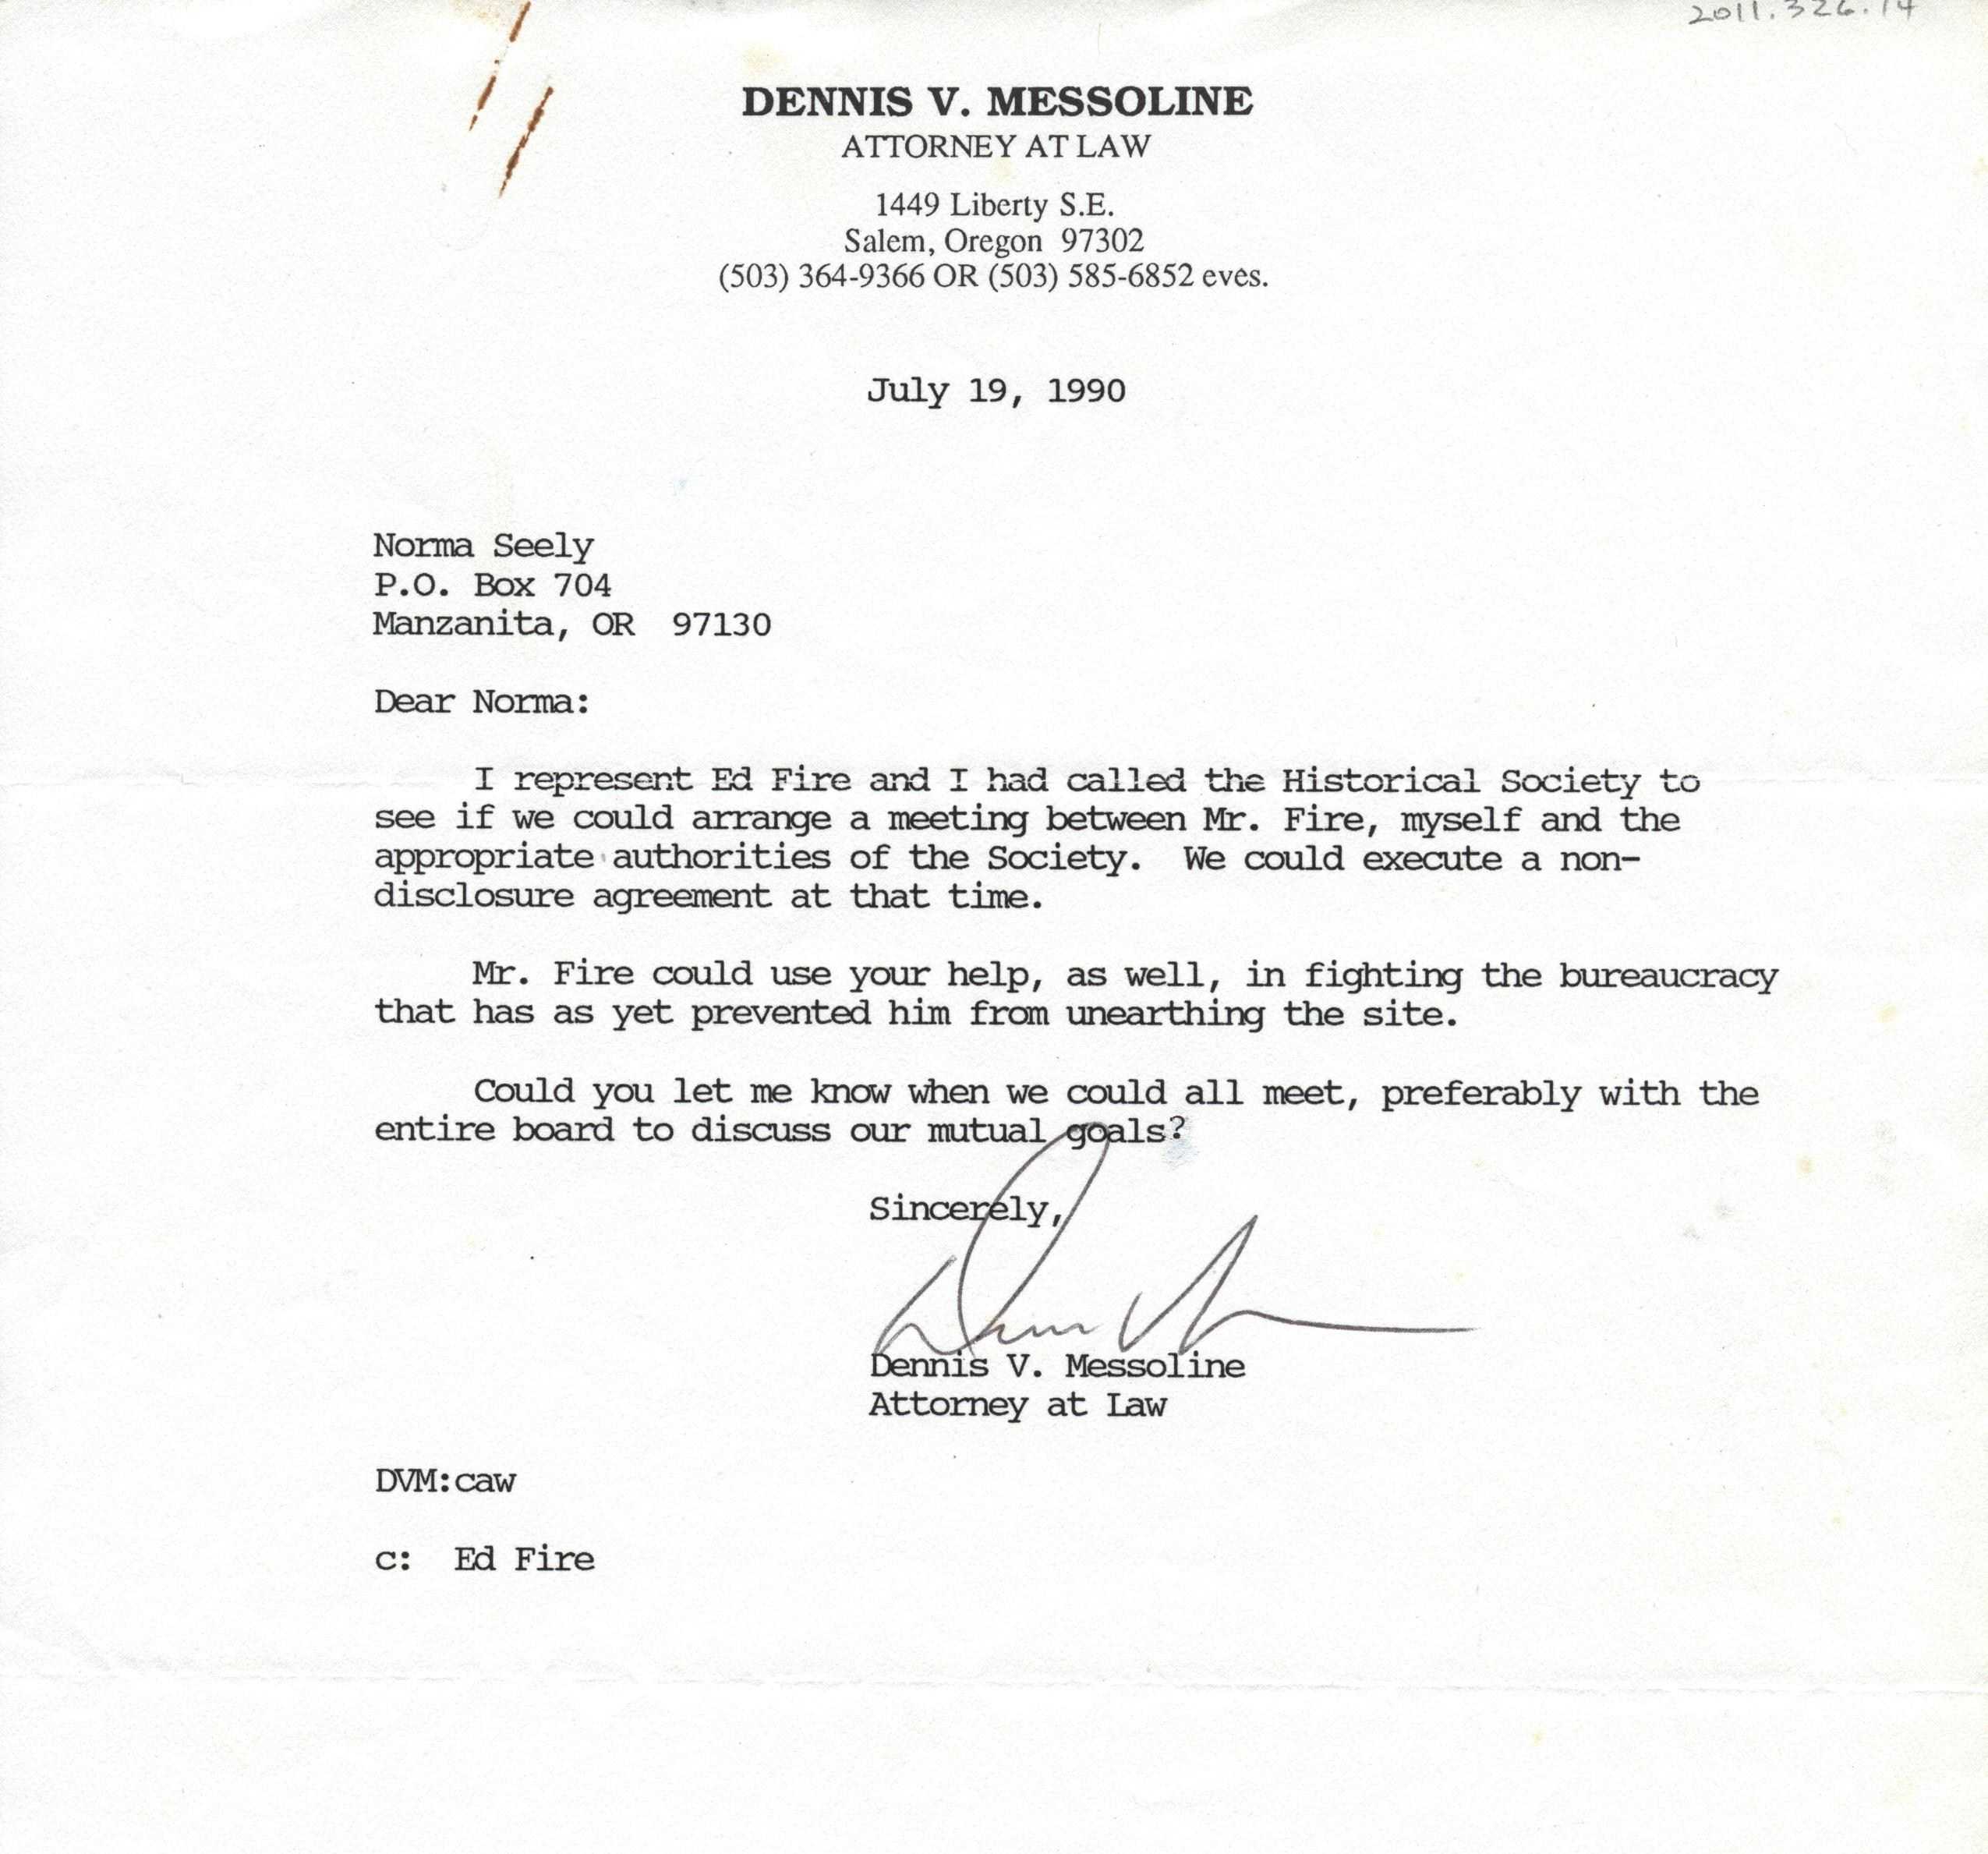 Letter to Norma Seely from Dennis V. Messoline ( Ed Fire's